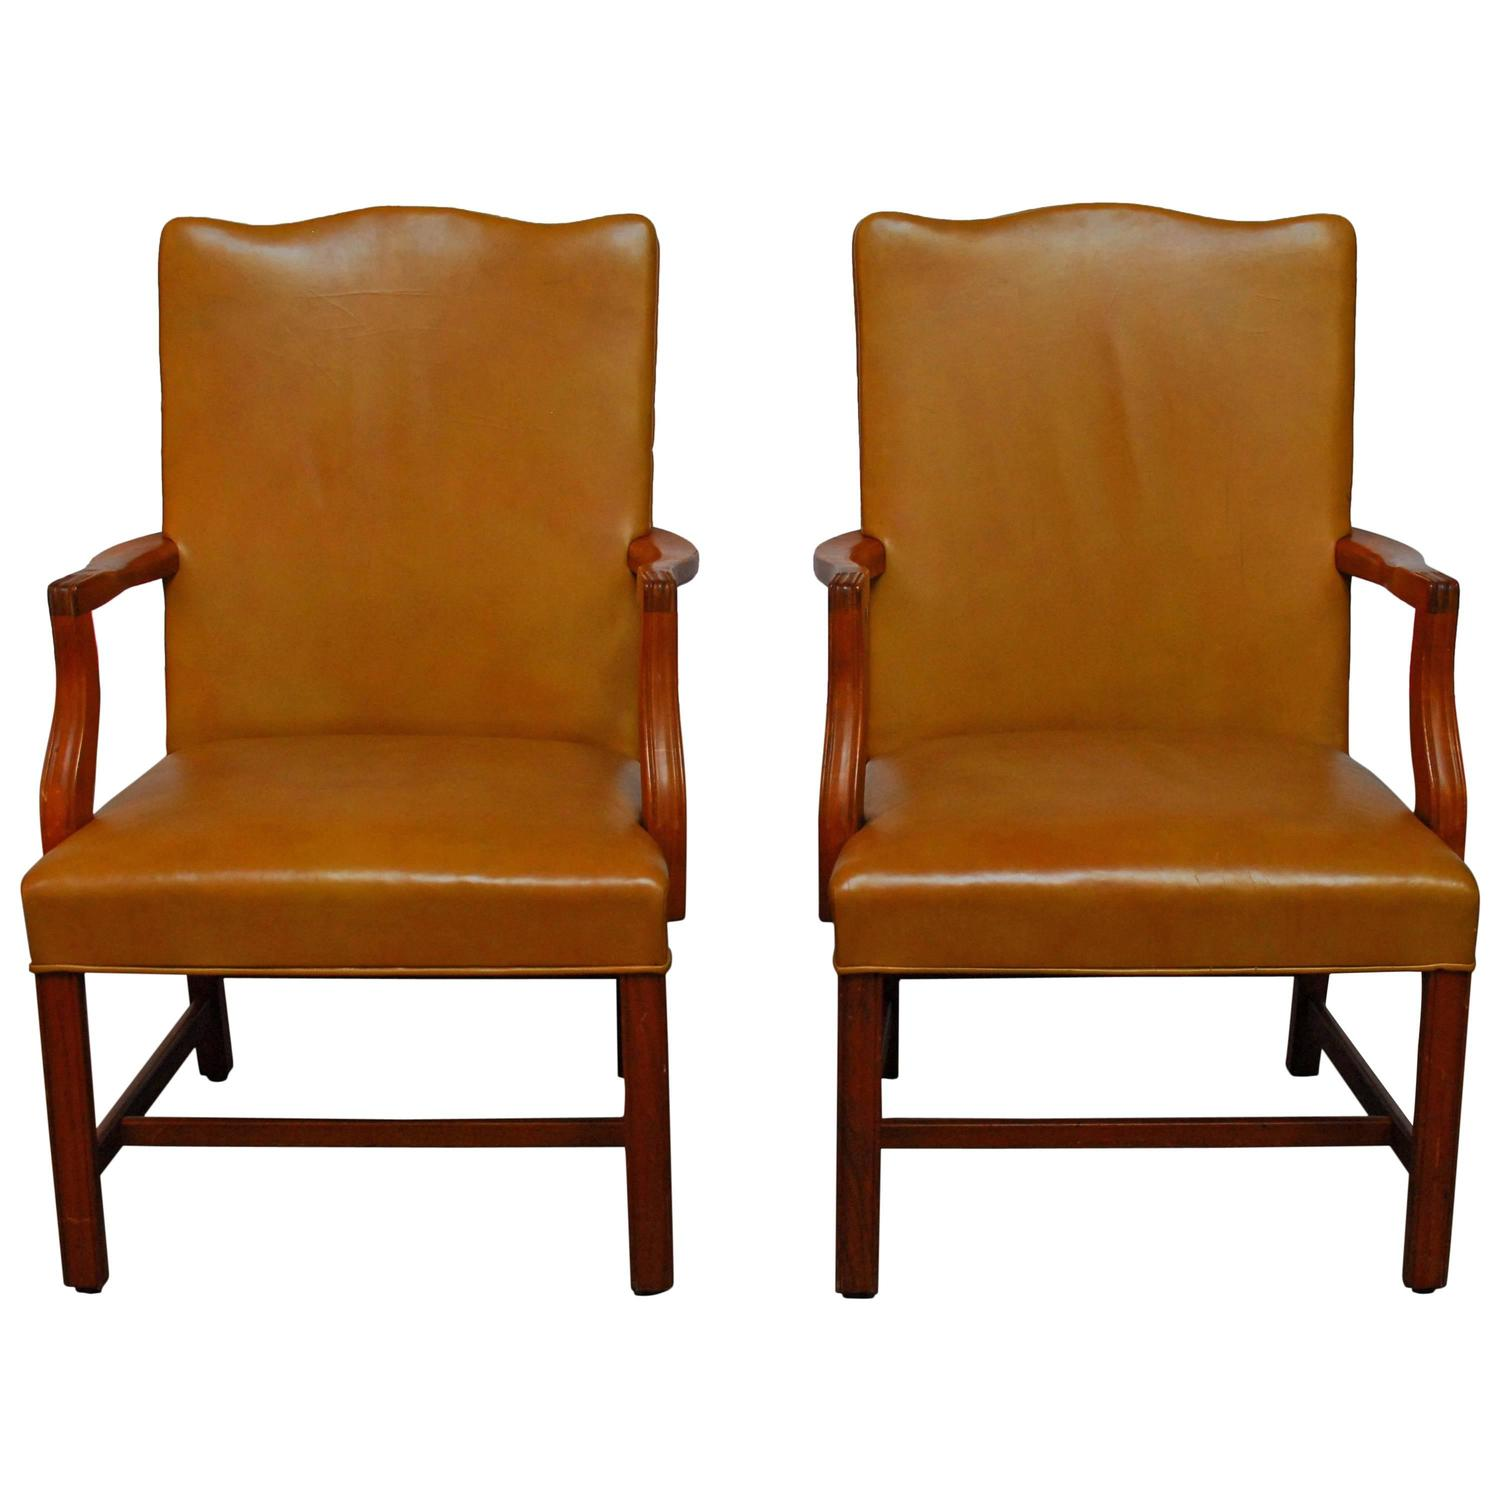 z shaped high chair ergonomic montreal pair of chippendale library chairs for sale at 1stdibs